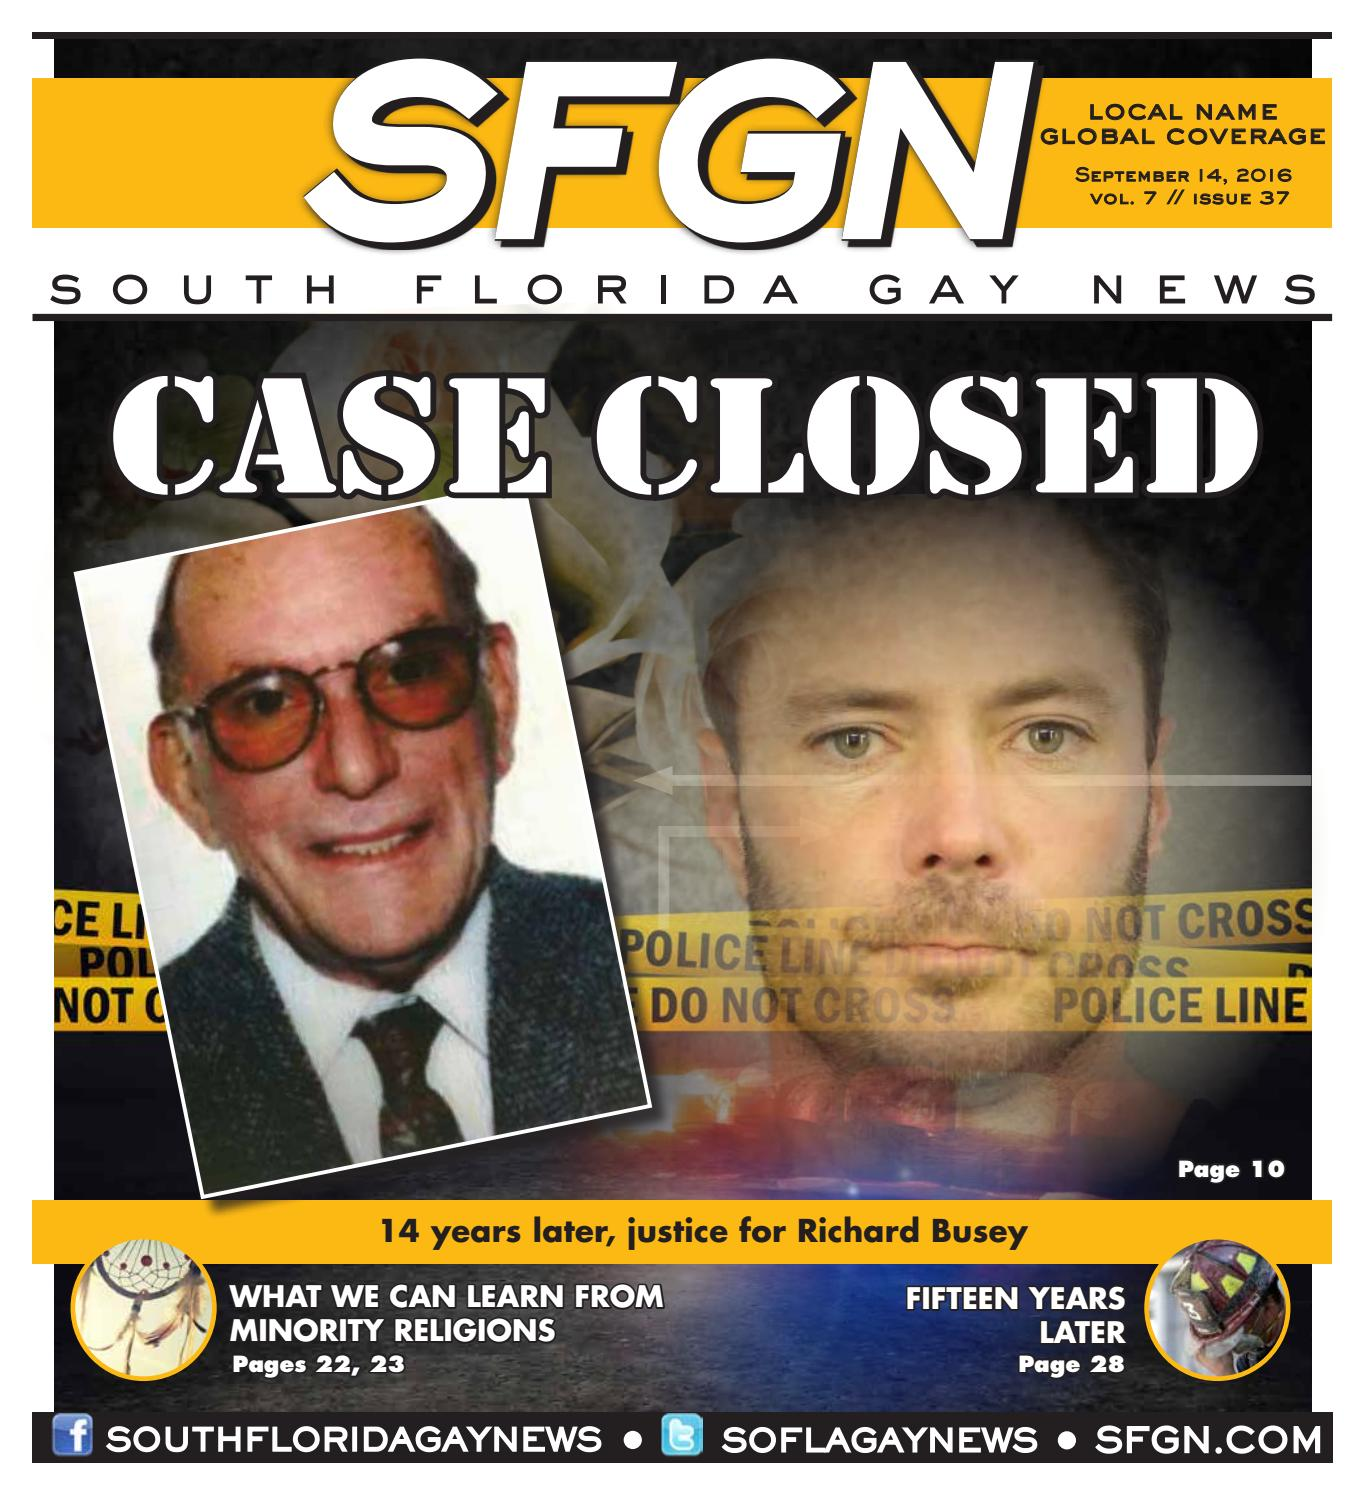 c95920722e 9 14 16 V7i37 by South Florida Gay News - issuu